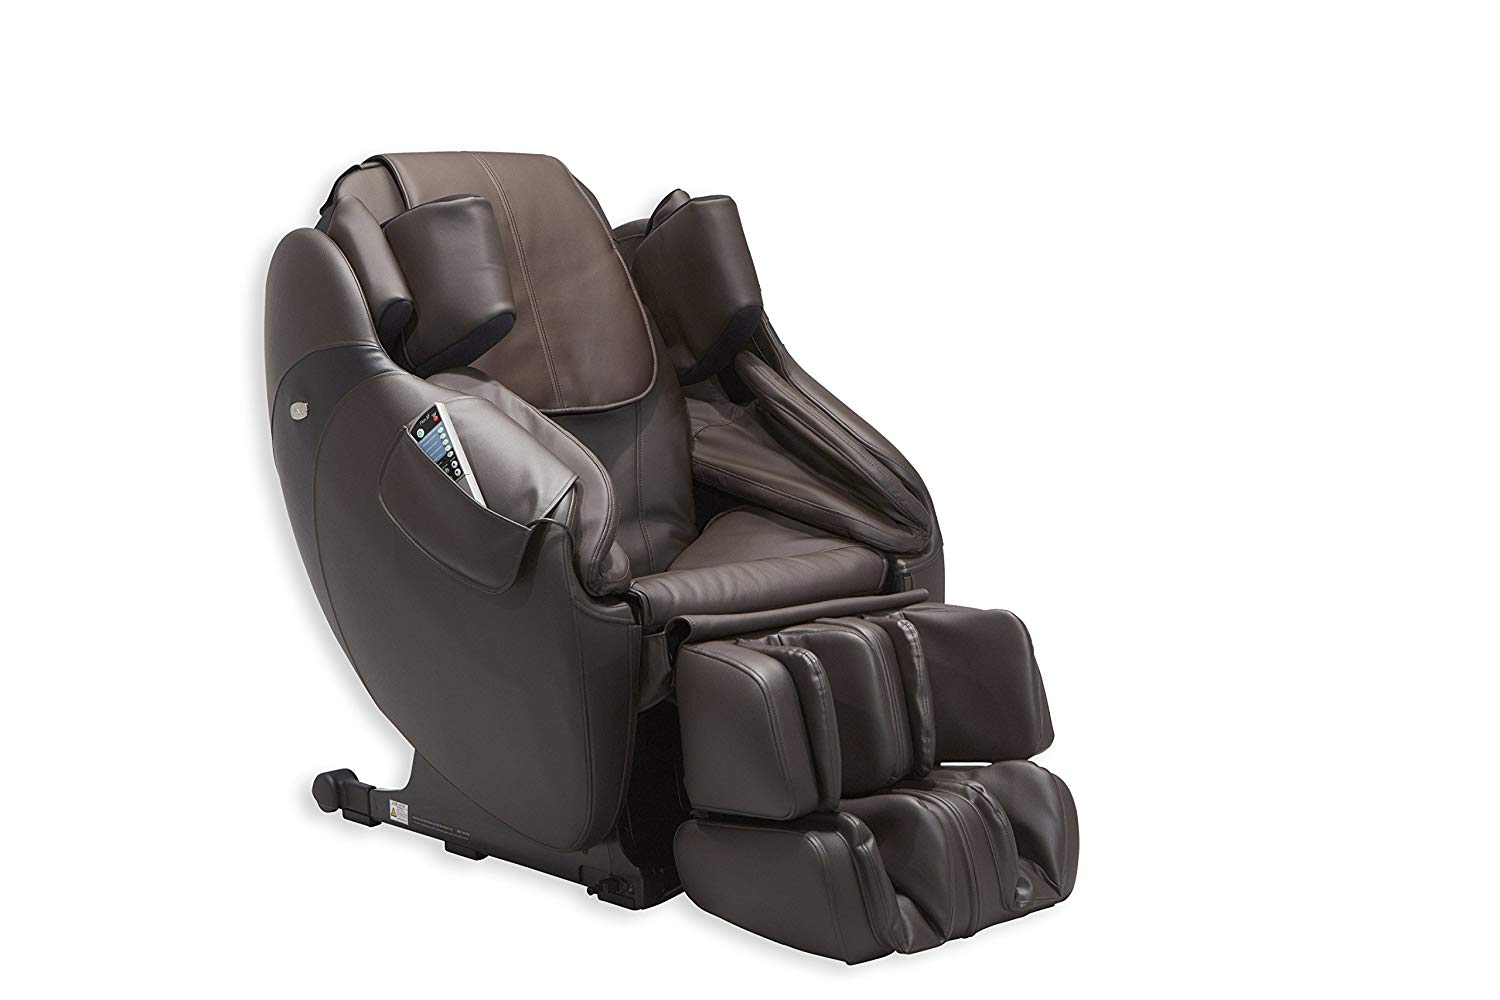 INADA Best Massage Chair Review by www.snoremagazine.com